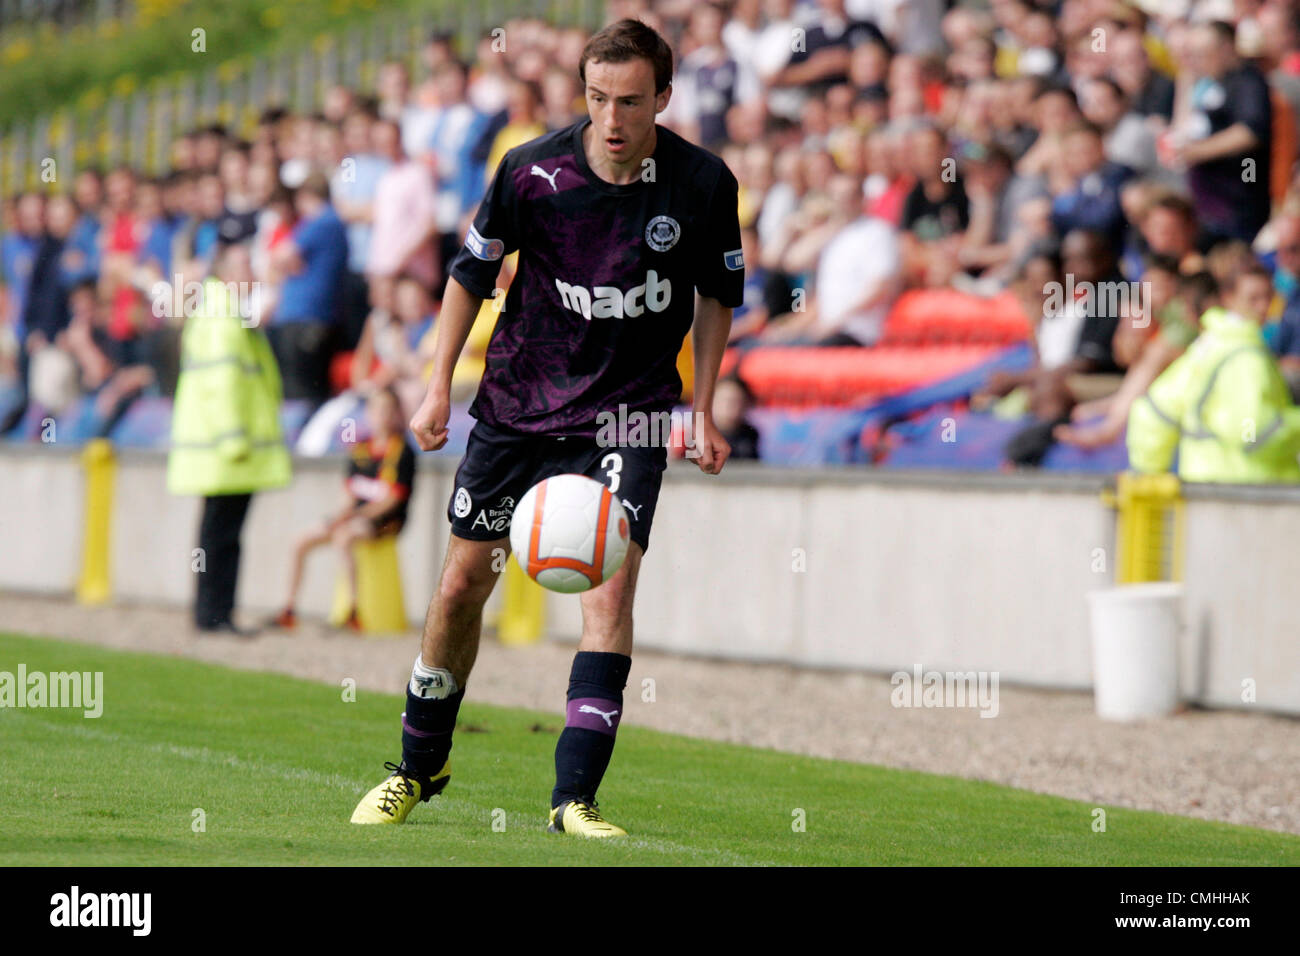 11th Aug 2012. 11.08.2012 Glasgow, Scotland.  3 Stewart Bannigan in action during the Scottish Football League Division - Stock Image